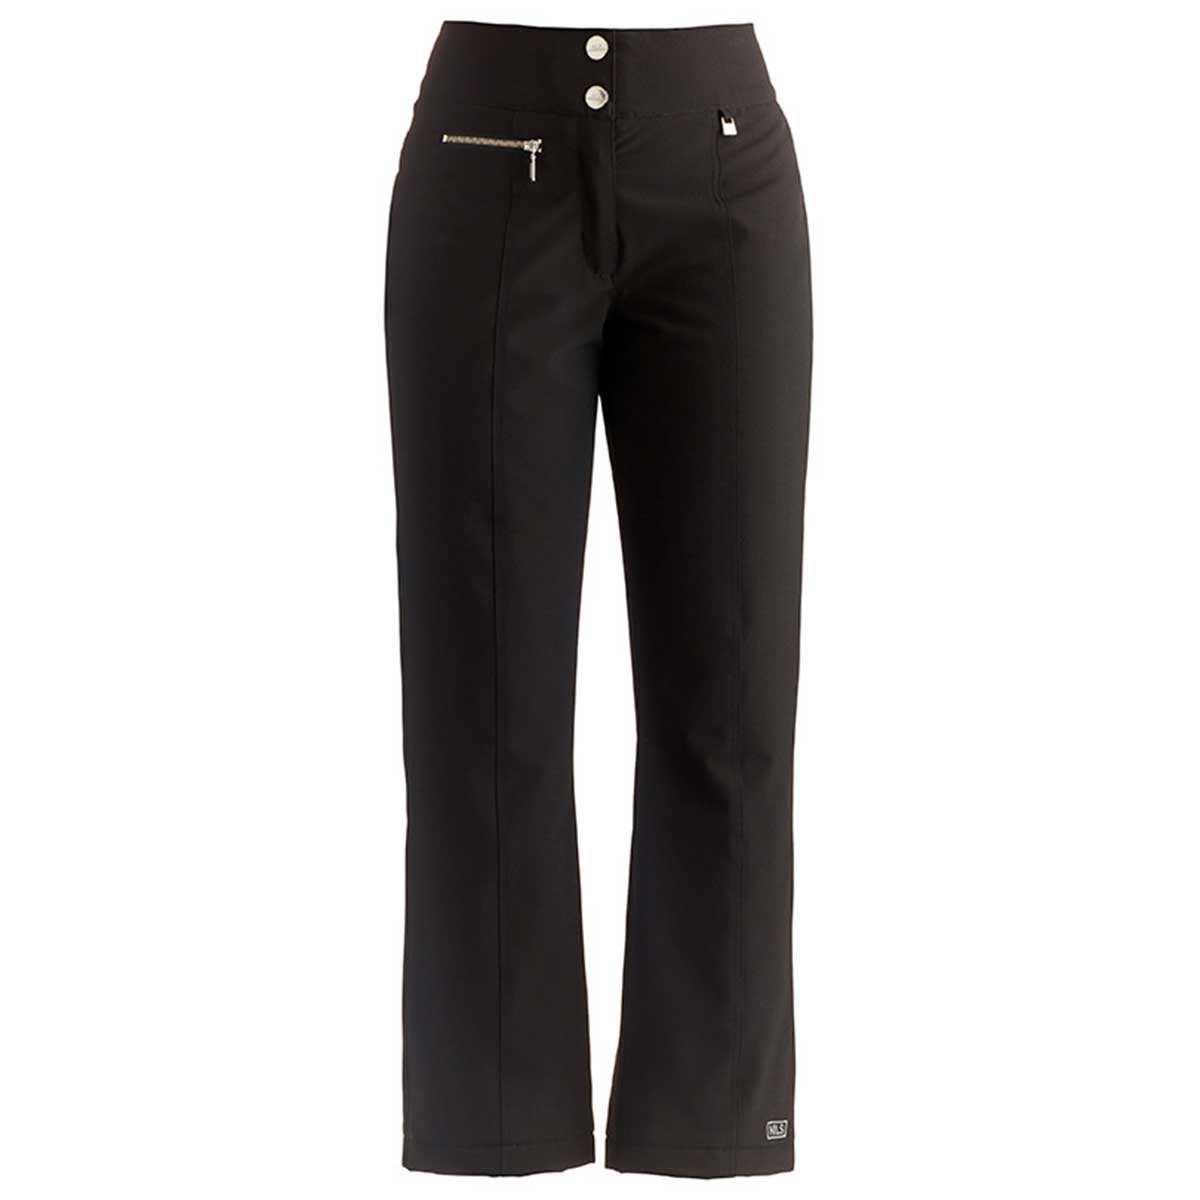 NILS Melissa 2.0 pant in Black